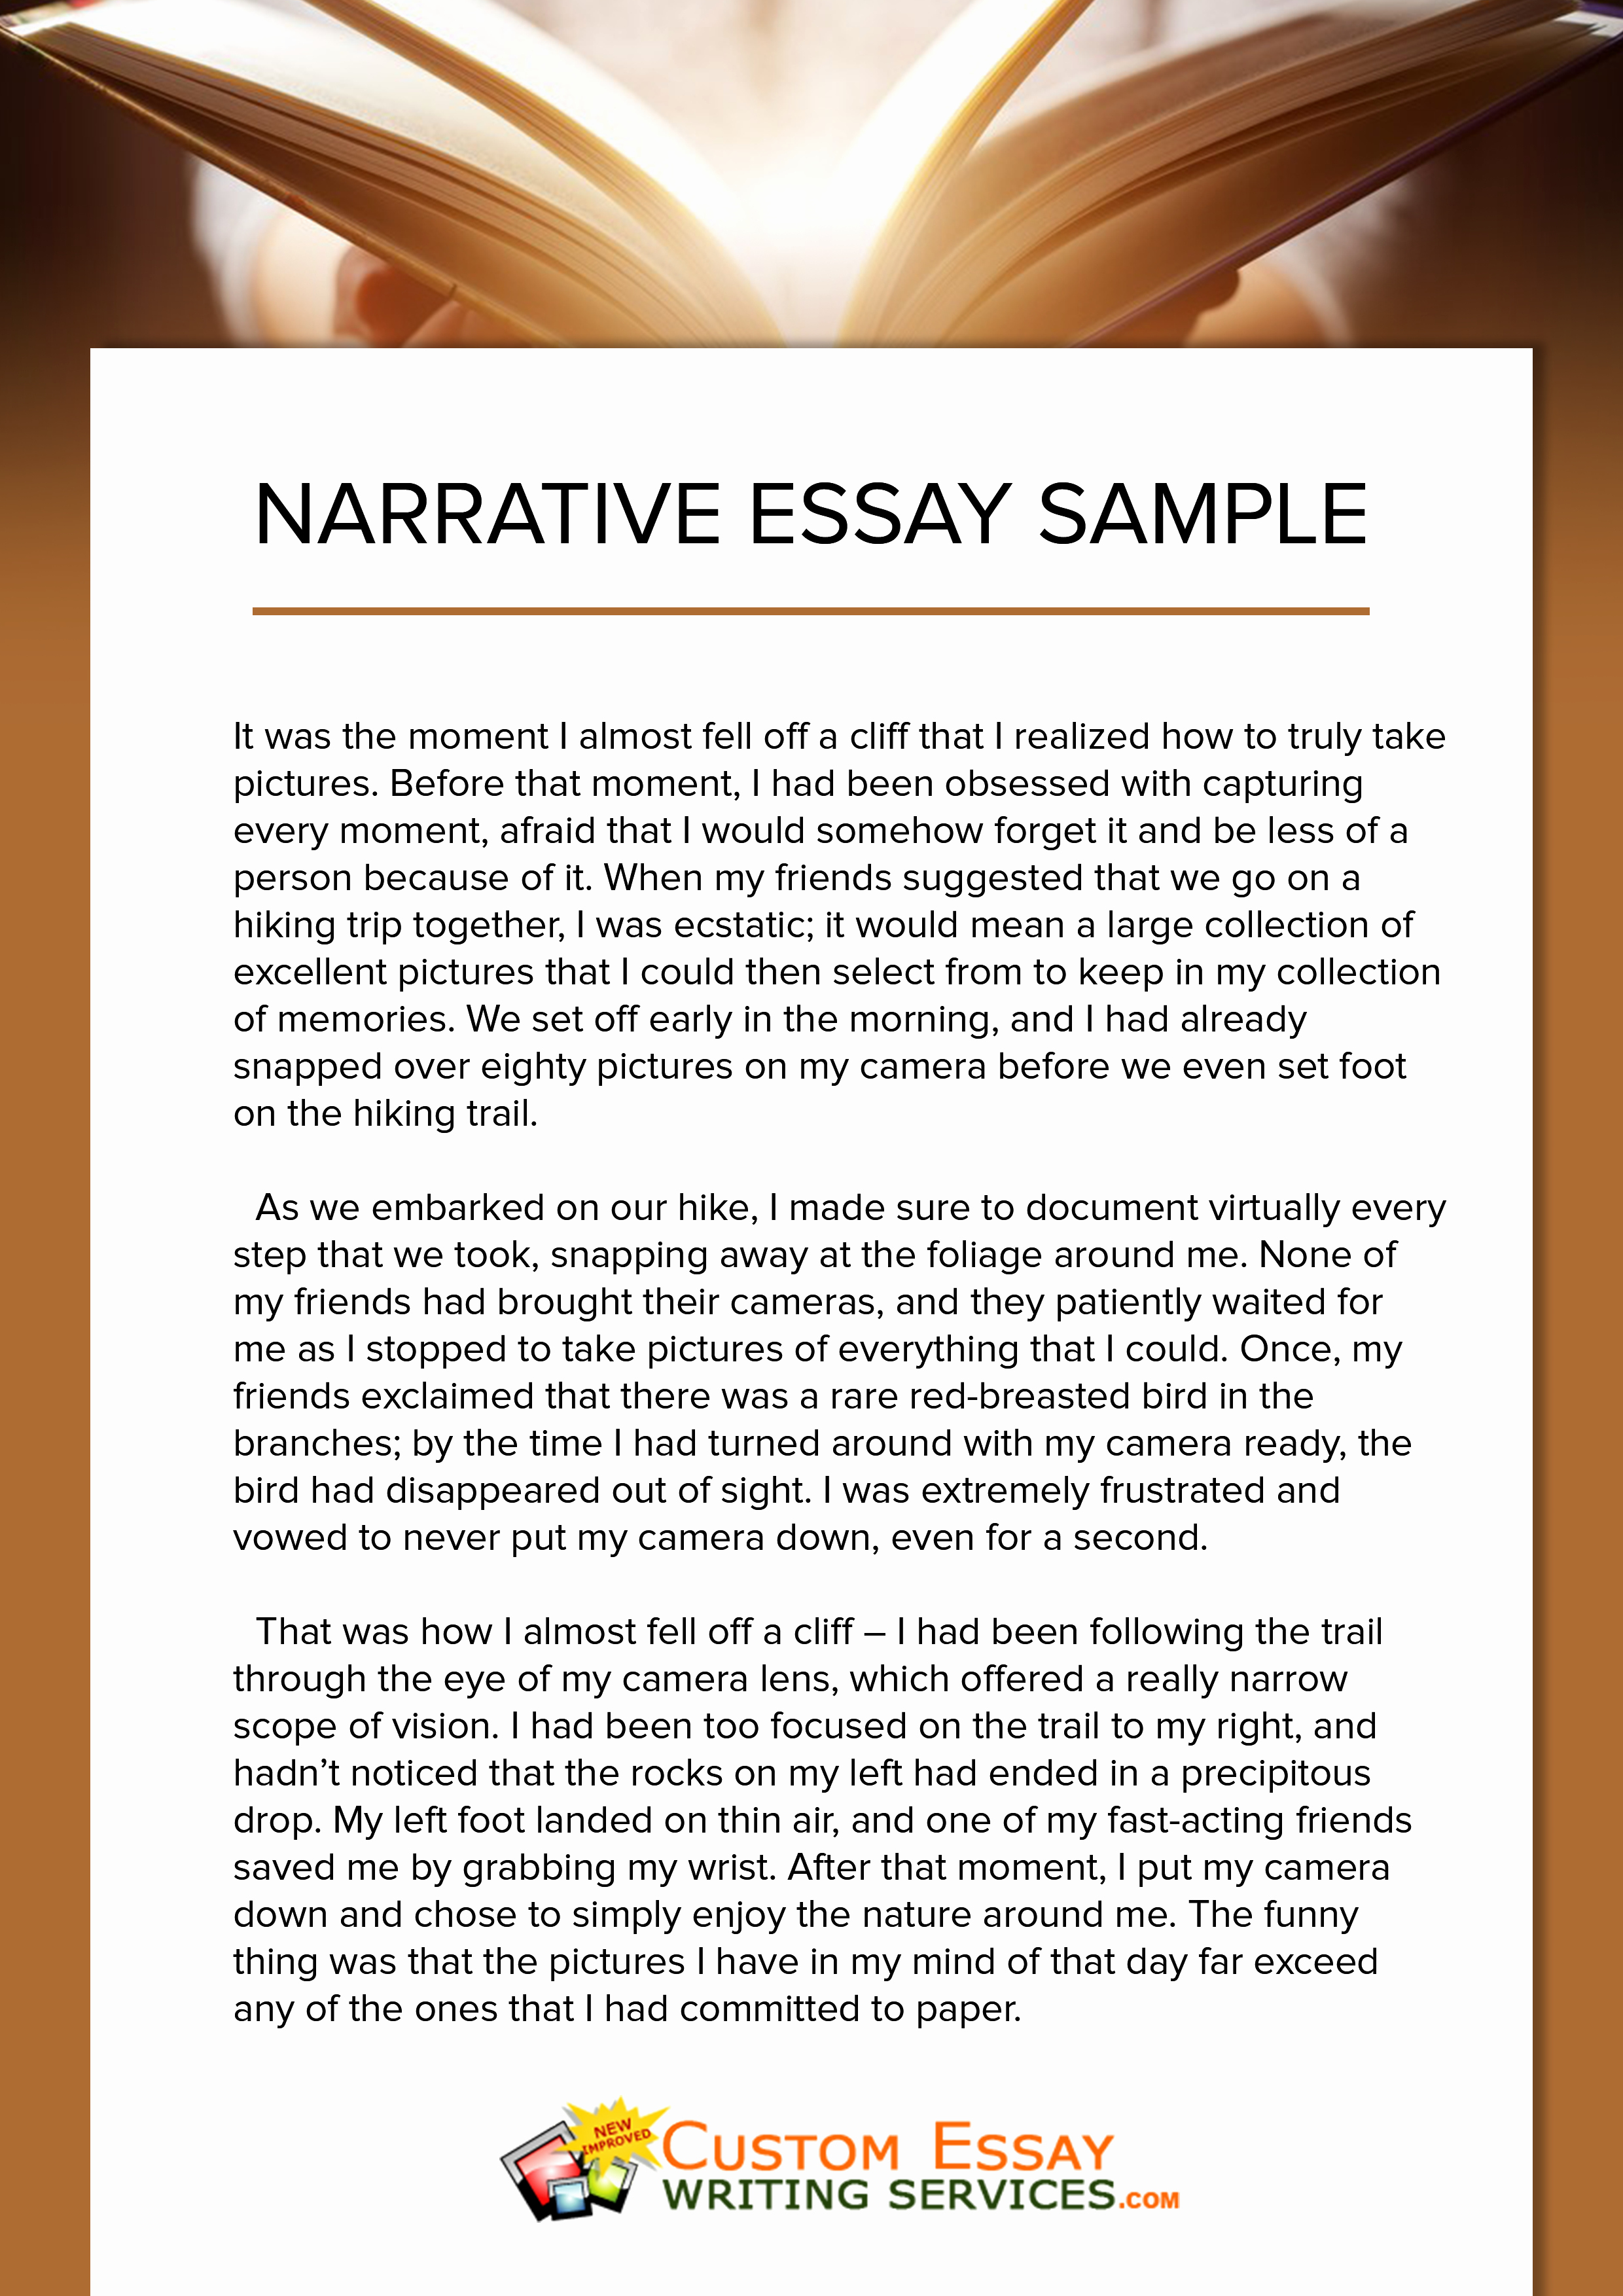 Personal Essay About Yourself Examples Luxury Narrative Essay Writing Ireland